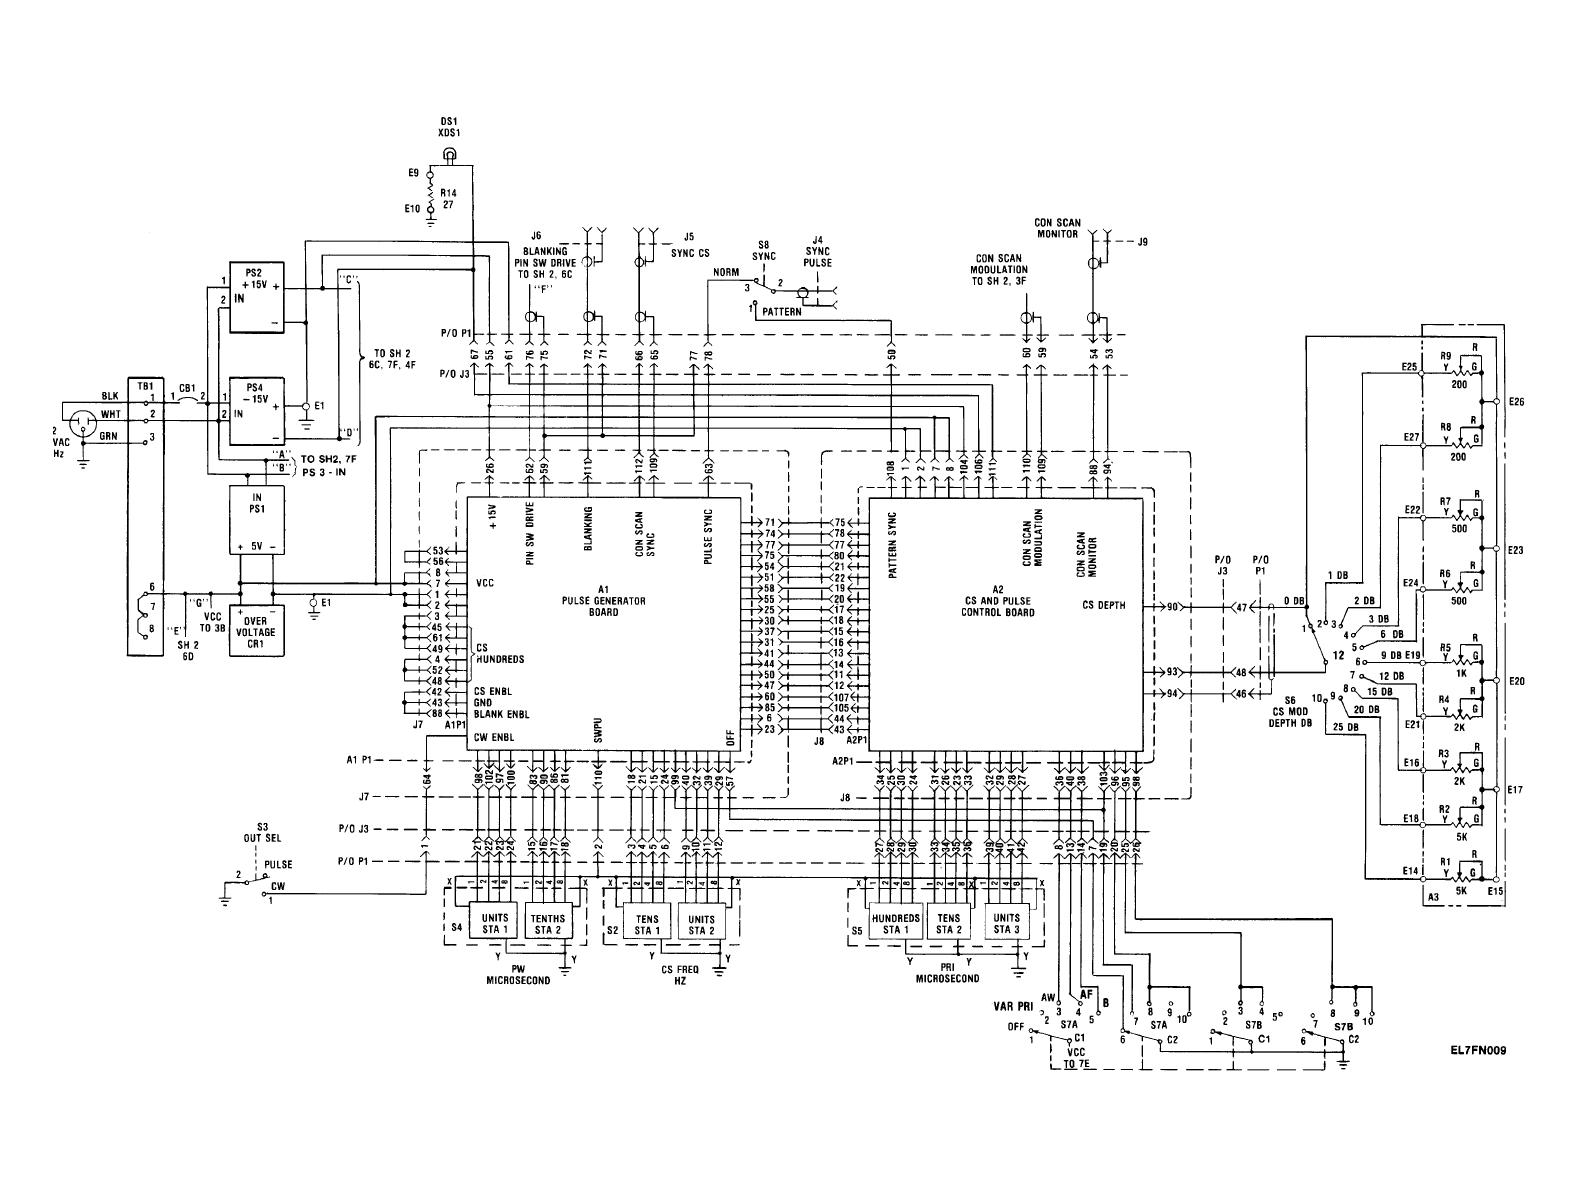 Figure Fo 9 Rf Modulation Assembly 1a3 1a4 Schematic